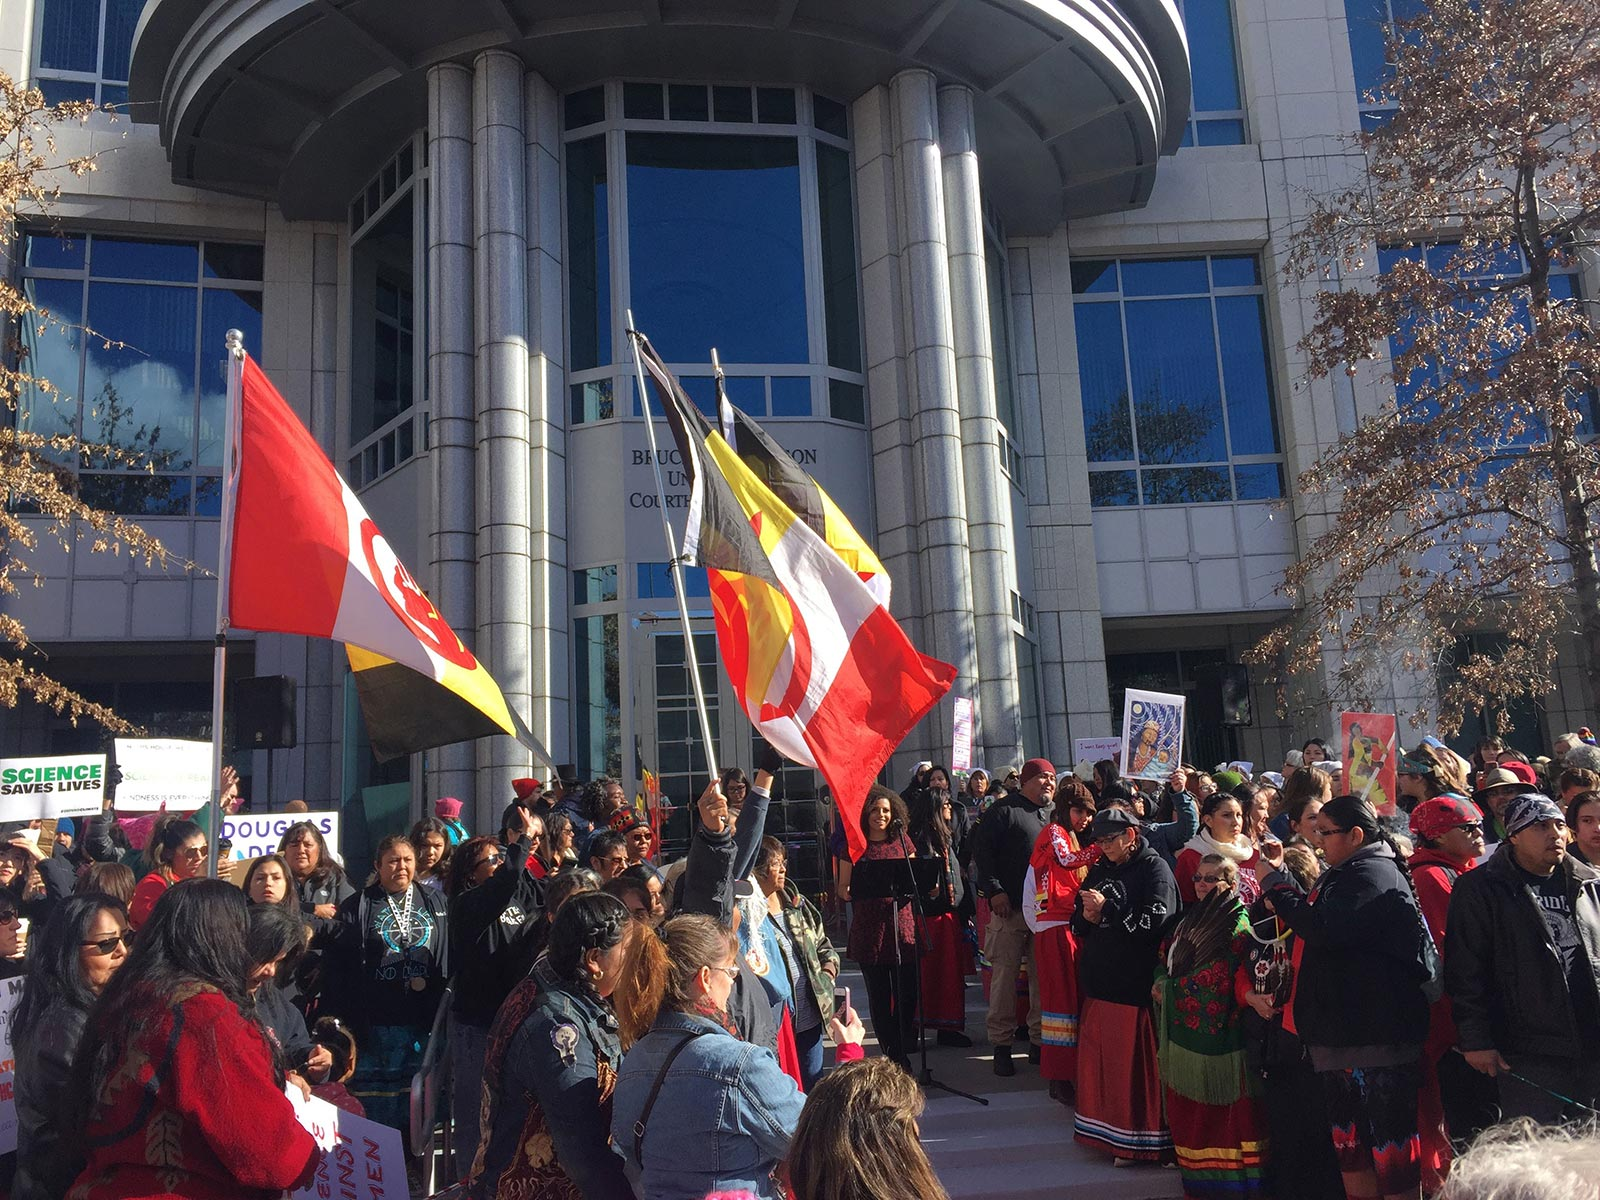 Indigenous protestors assembled in front of a federal court house listening to individuals speaks